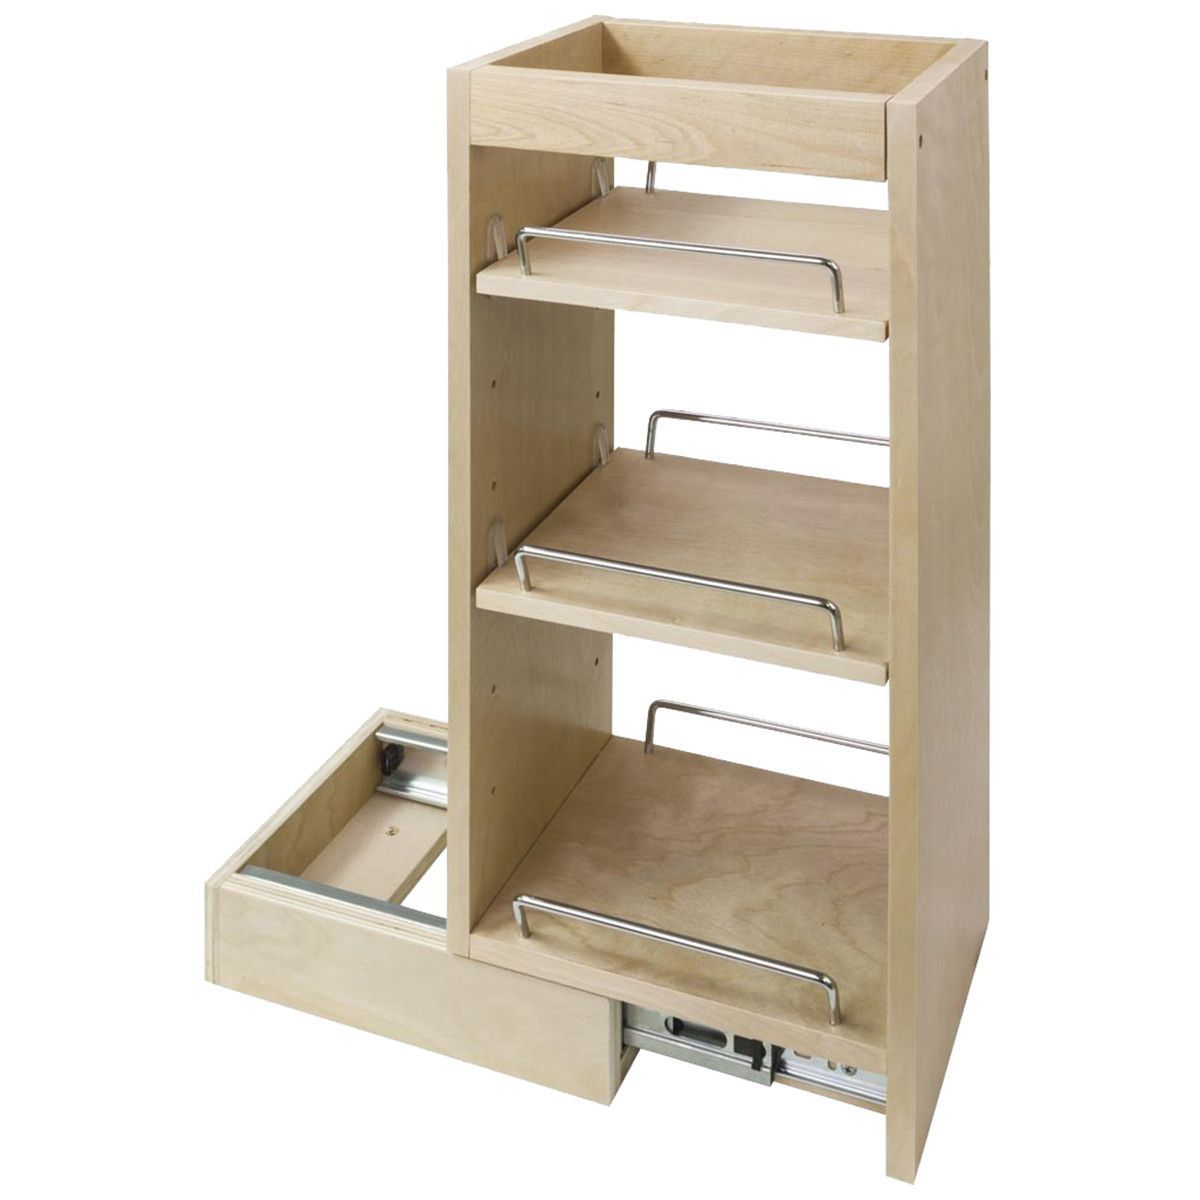 Wall Cabinet Pullout 10 1 2 X 24 Wall Cabinet New Kitchen Cabinets Pull Out Spice Rack